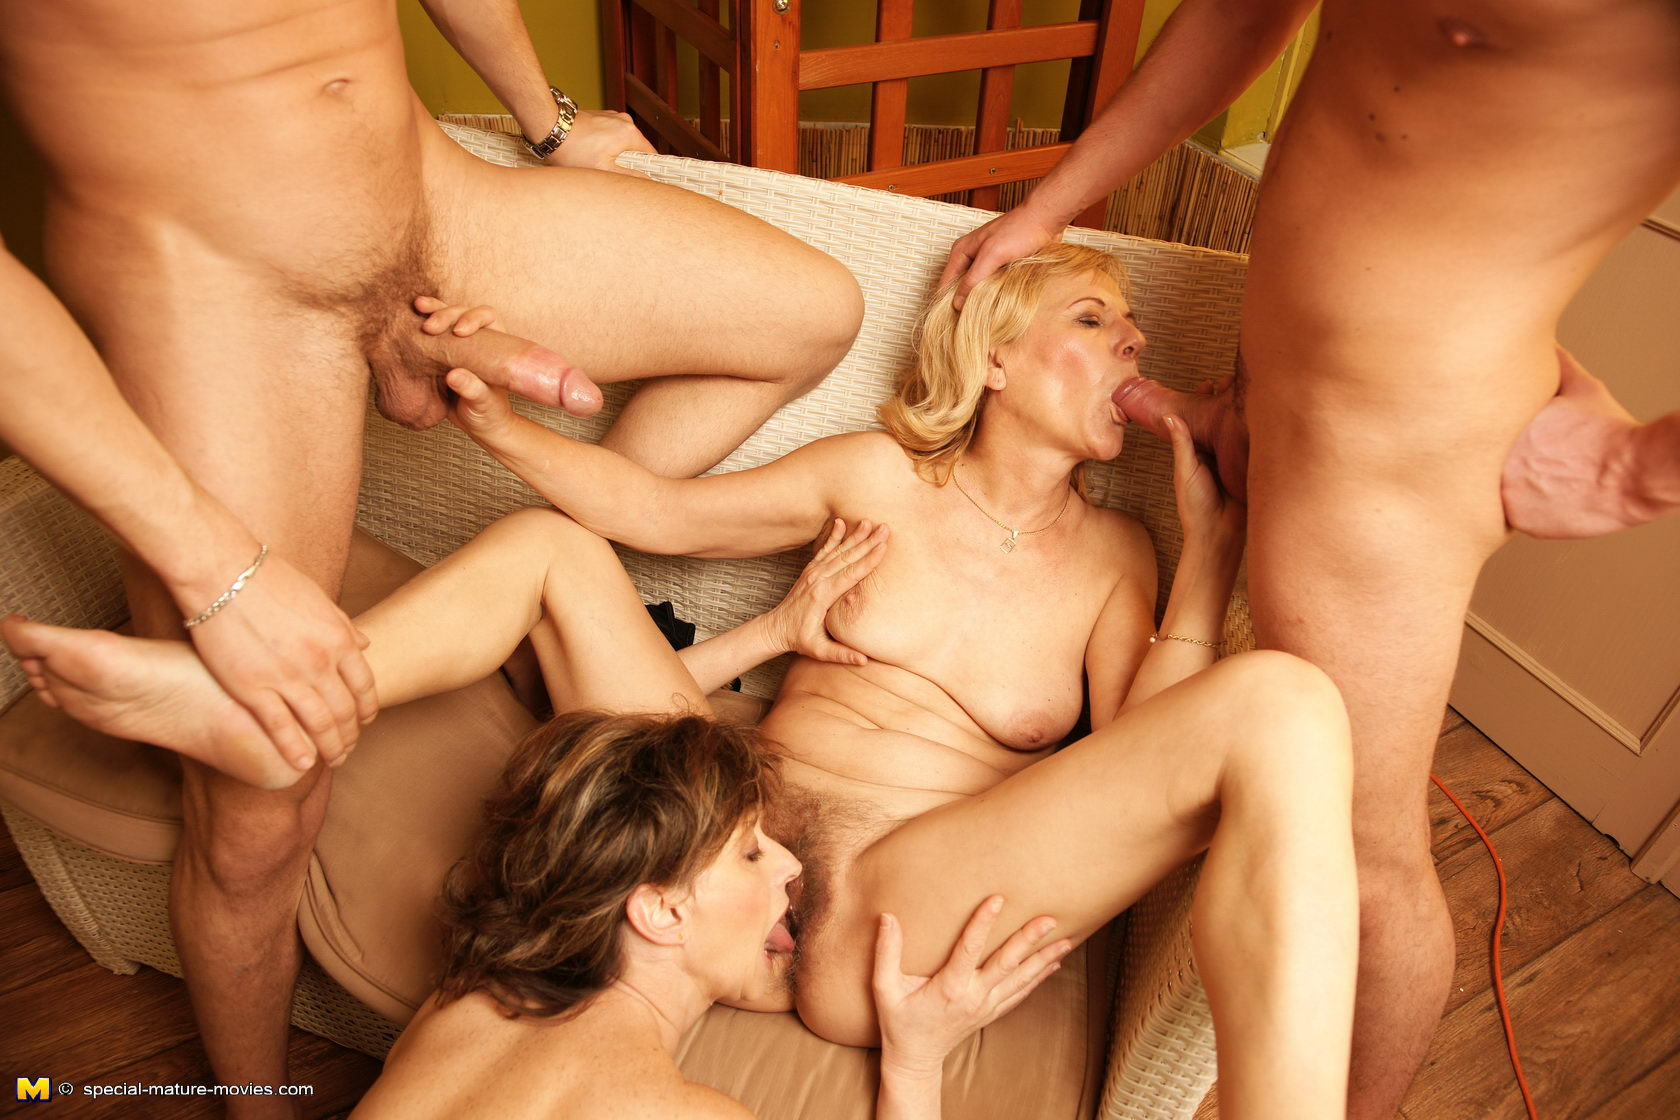 Hot mature women porn